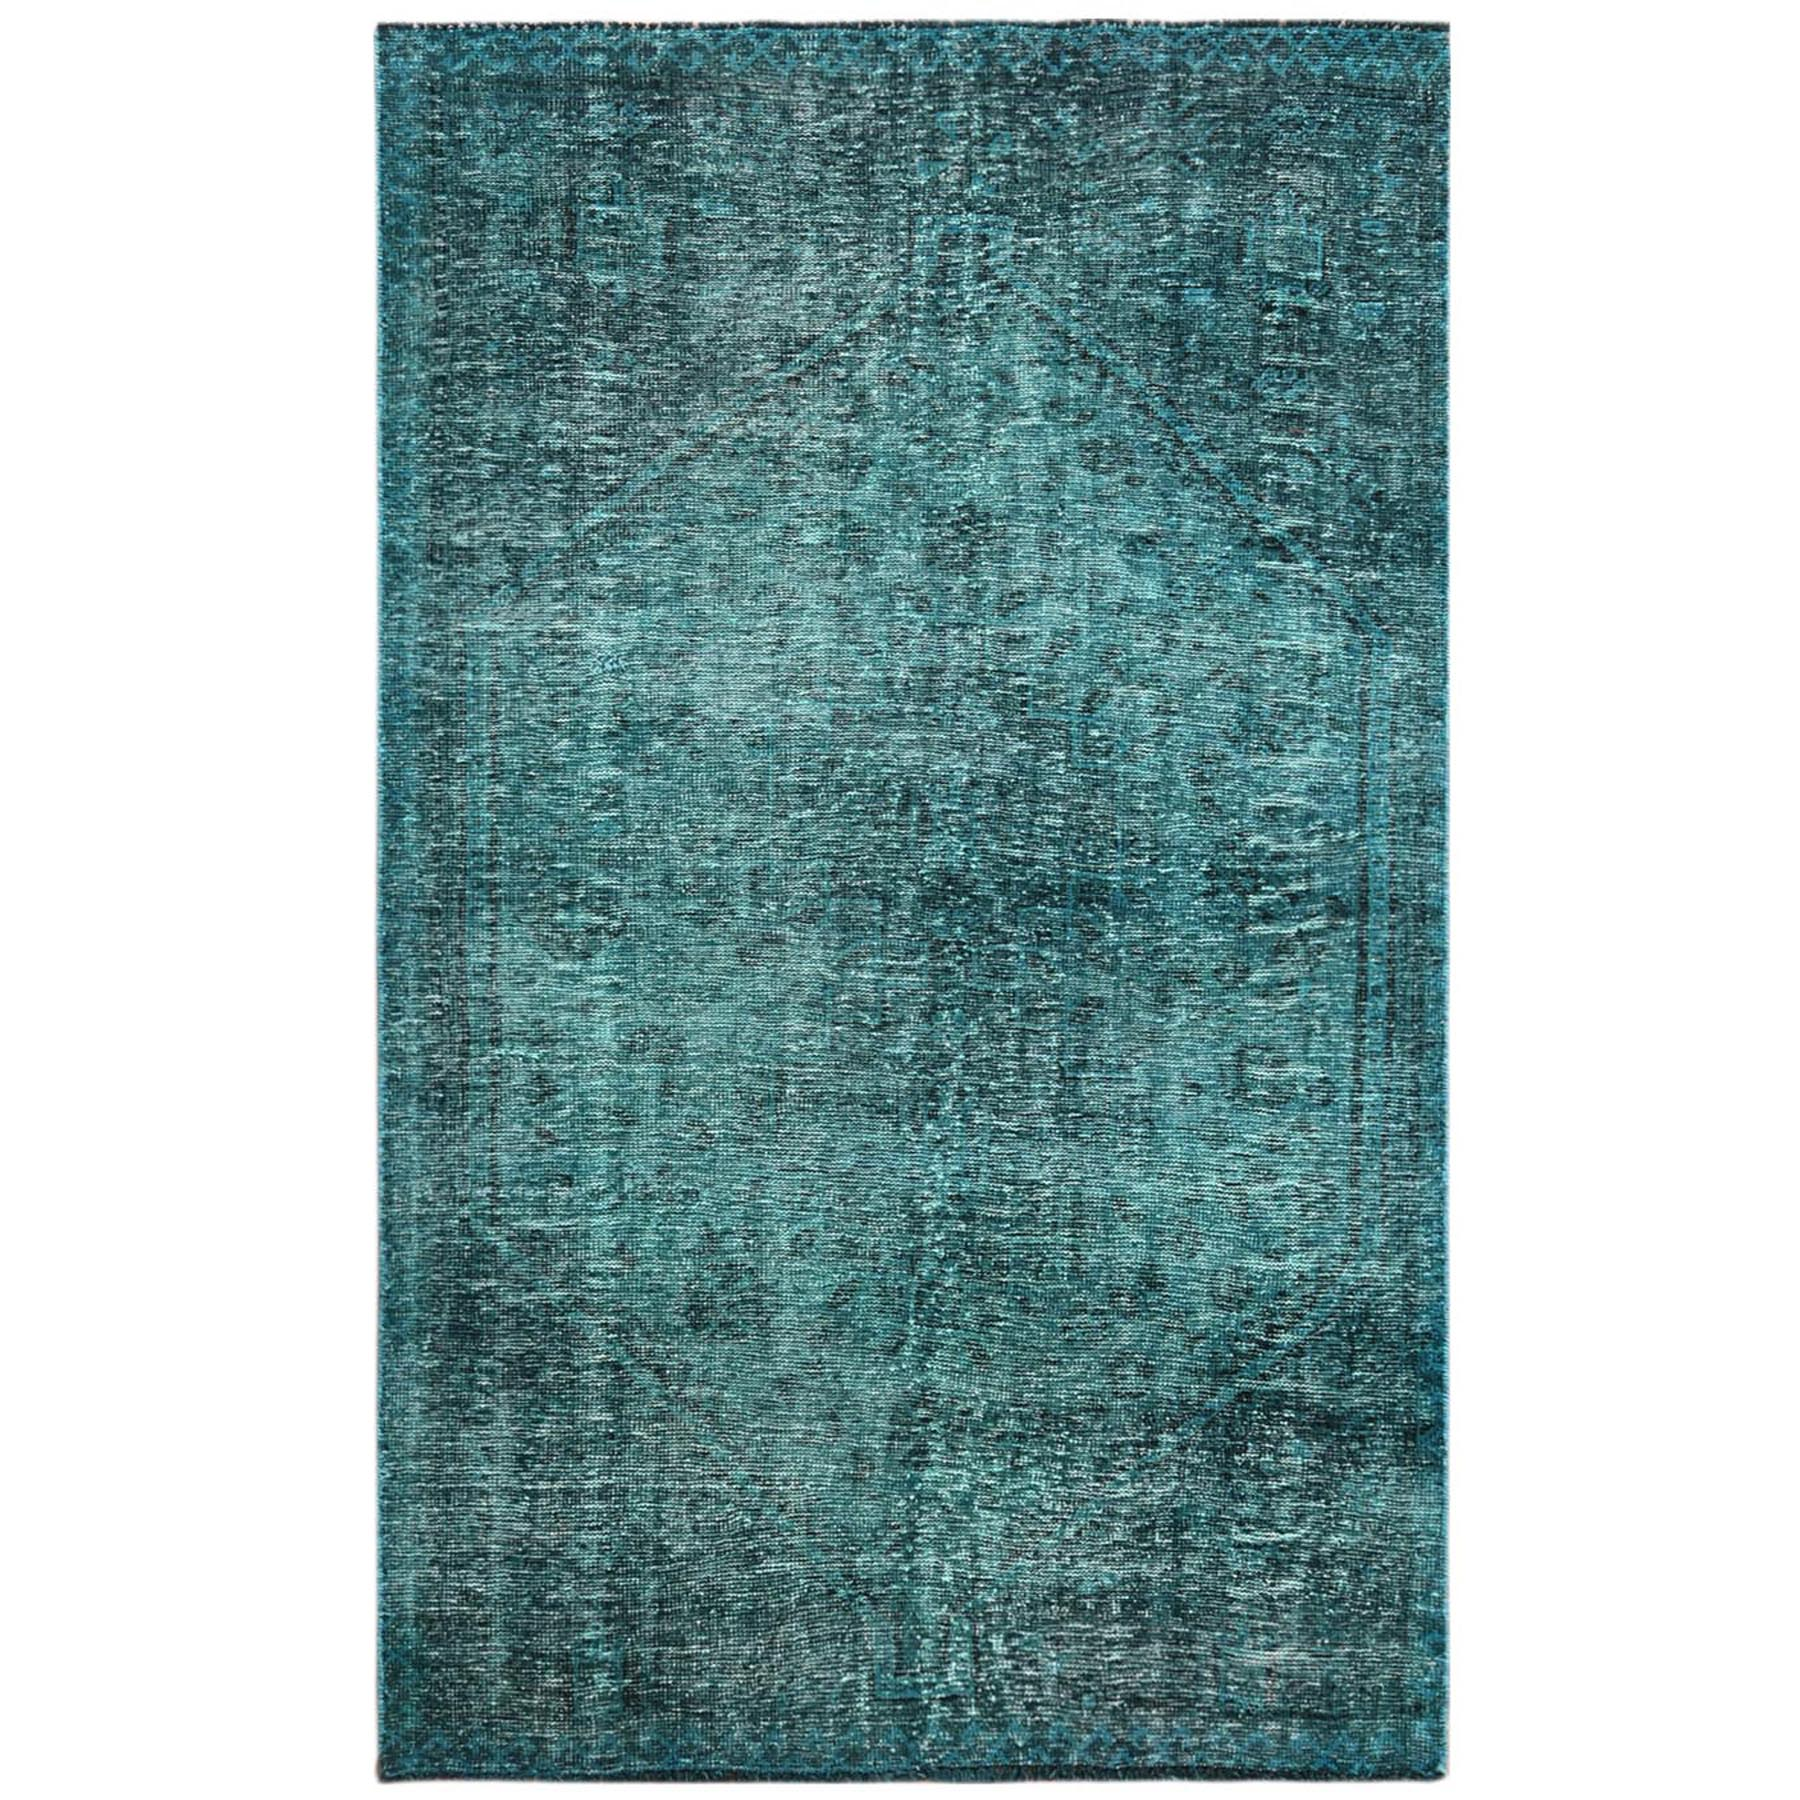 Fetneh Collection And Vintage Overdyed Collection Hand Knotted Teal Rug No: 1121104